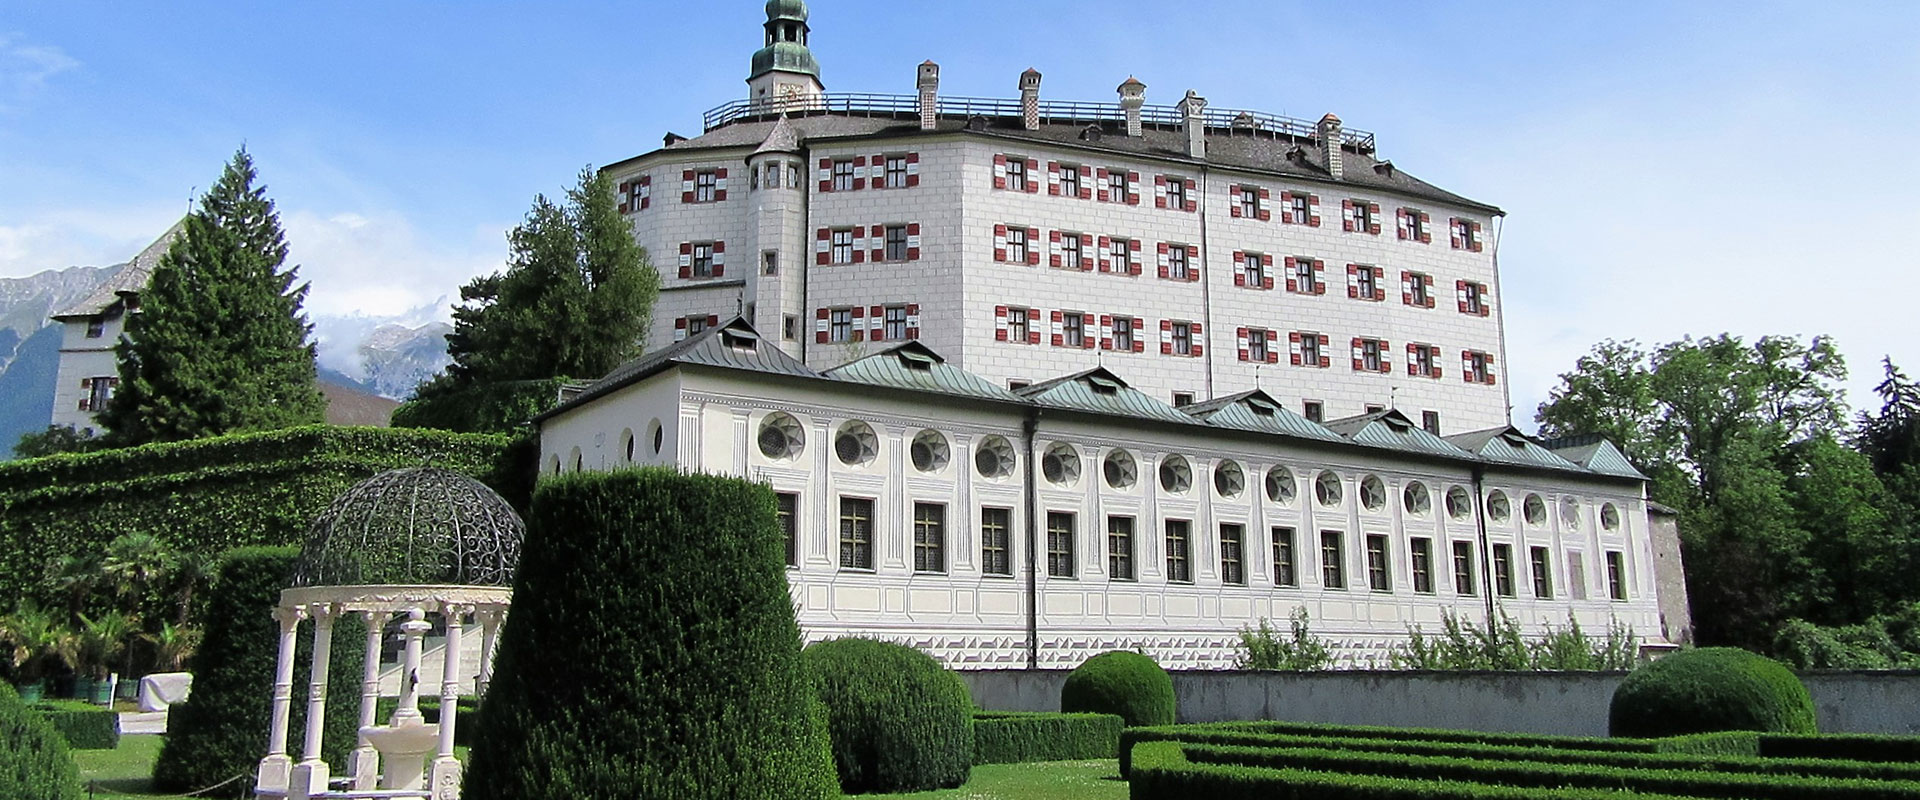 Innsbruck and Ambras Castle